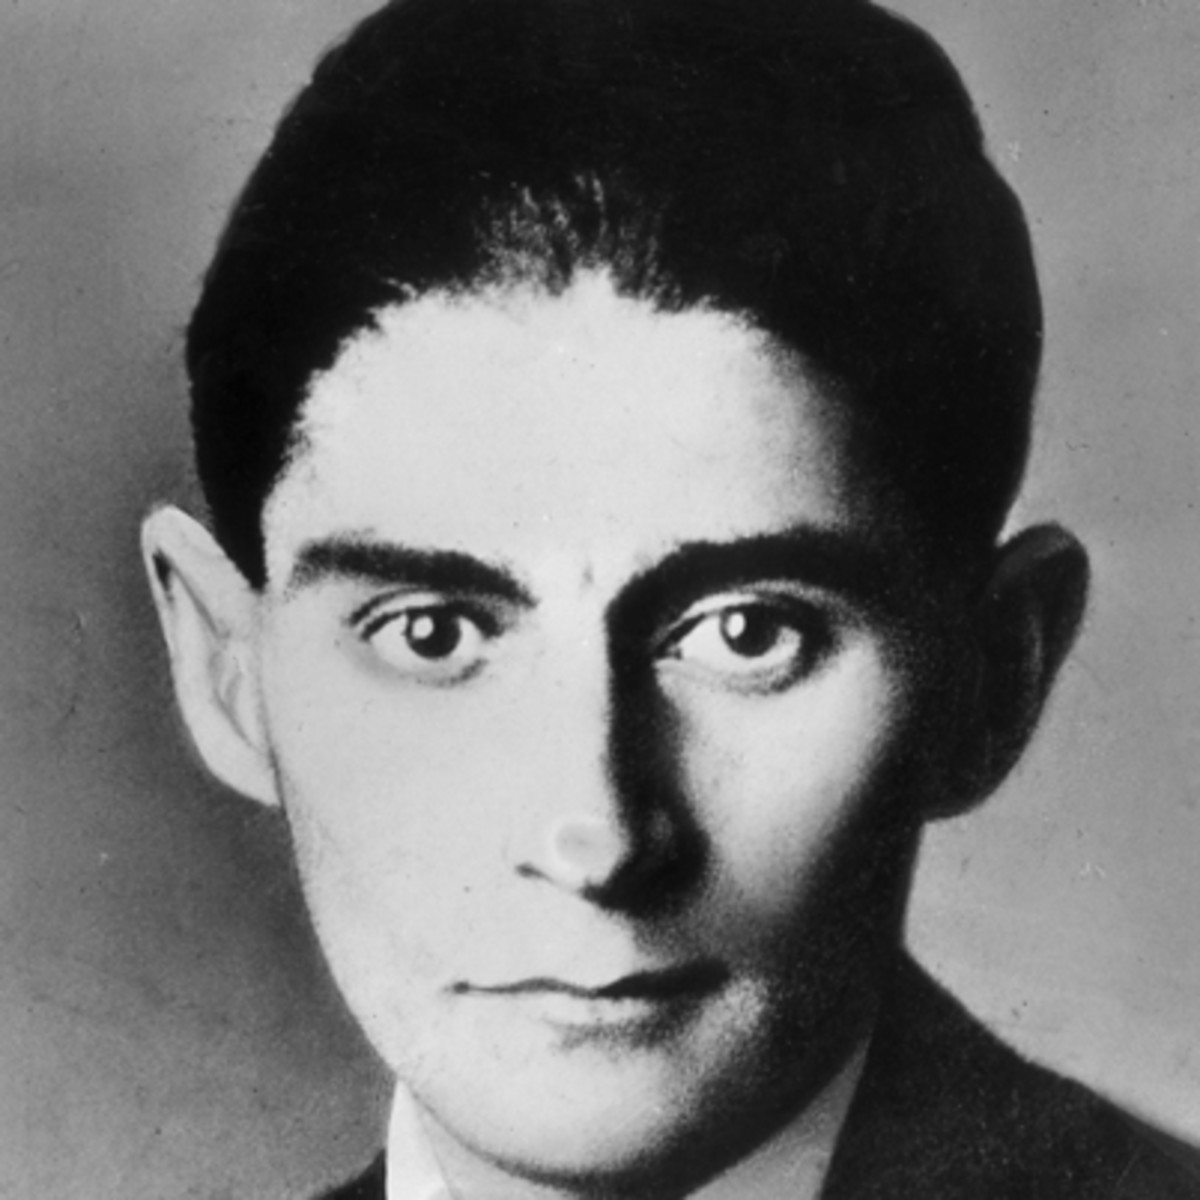 READ MORE:undefinedKafka's 'Metamorphosis' Turns 100